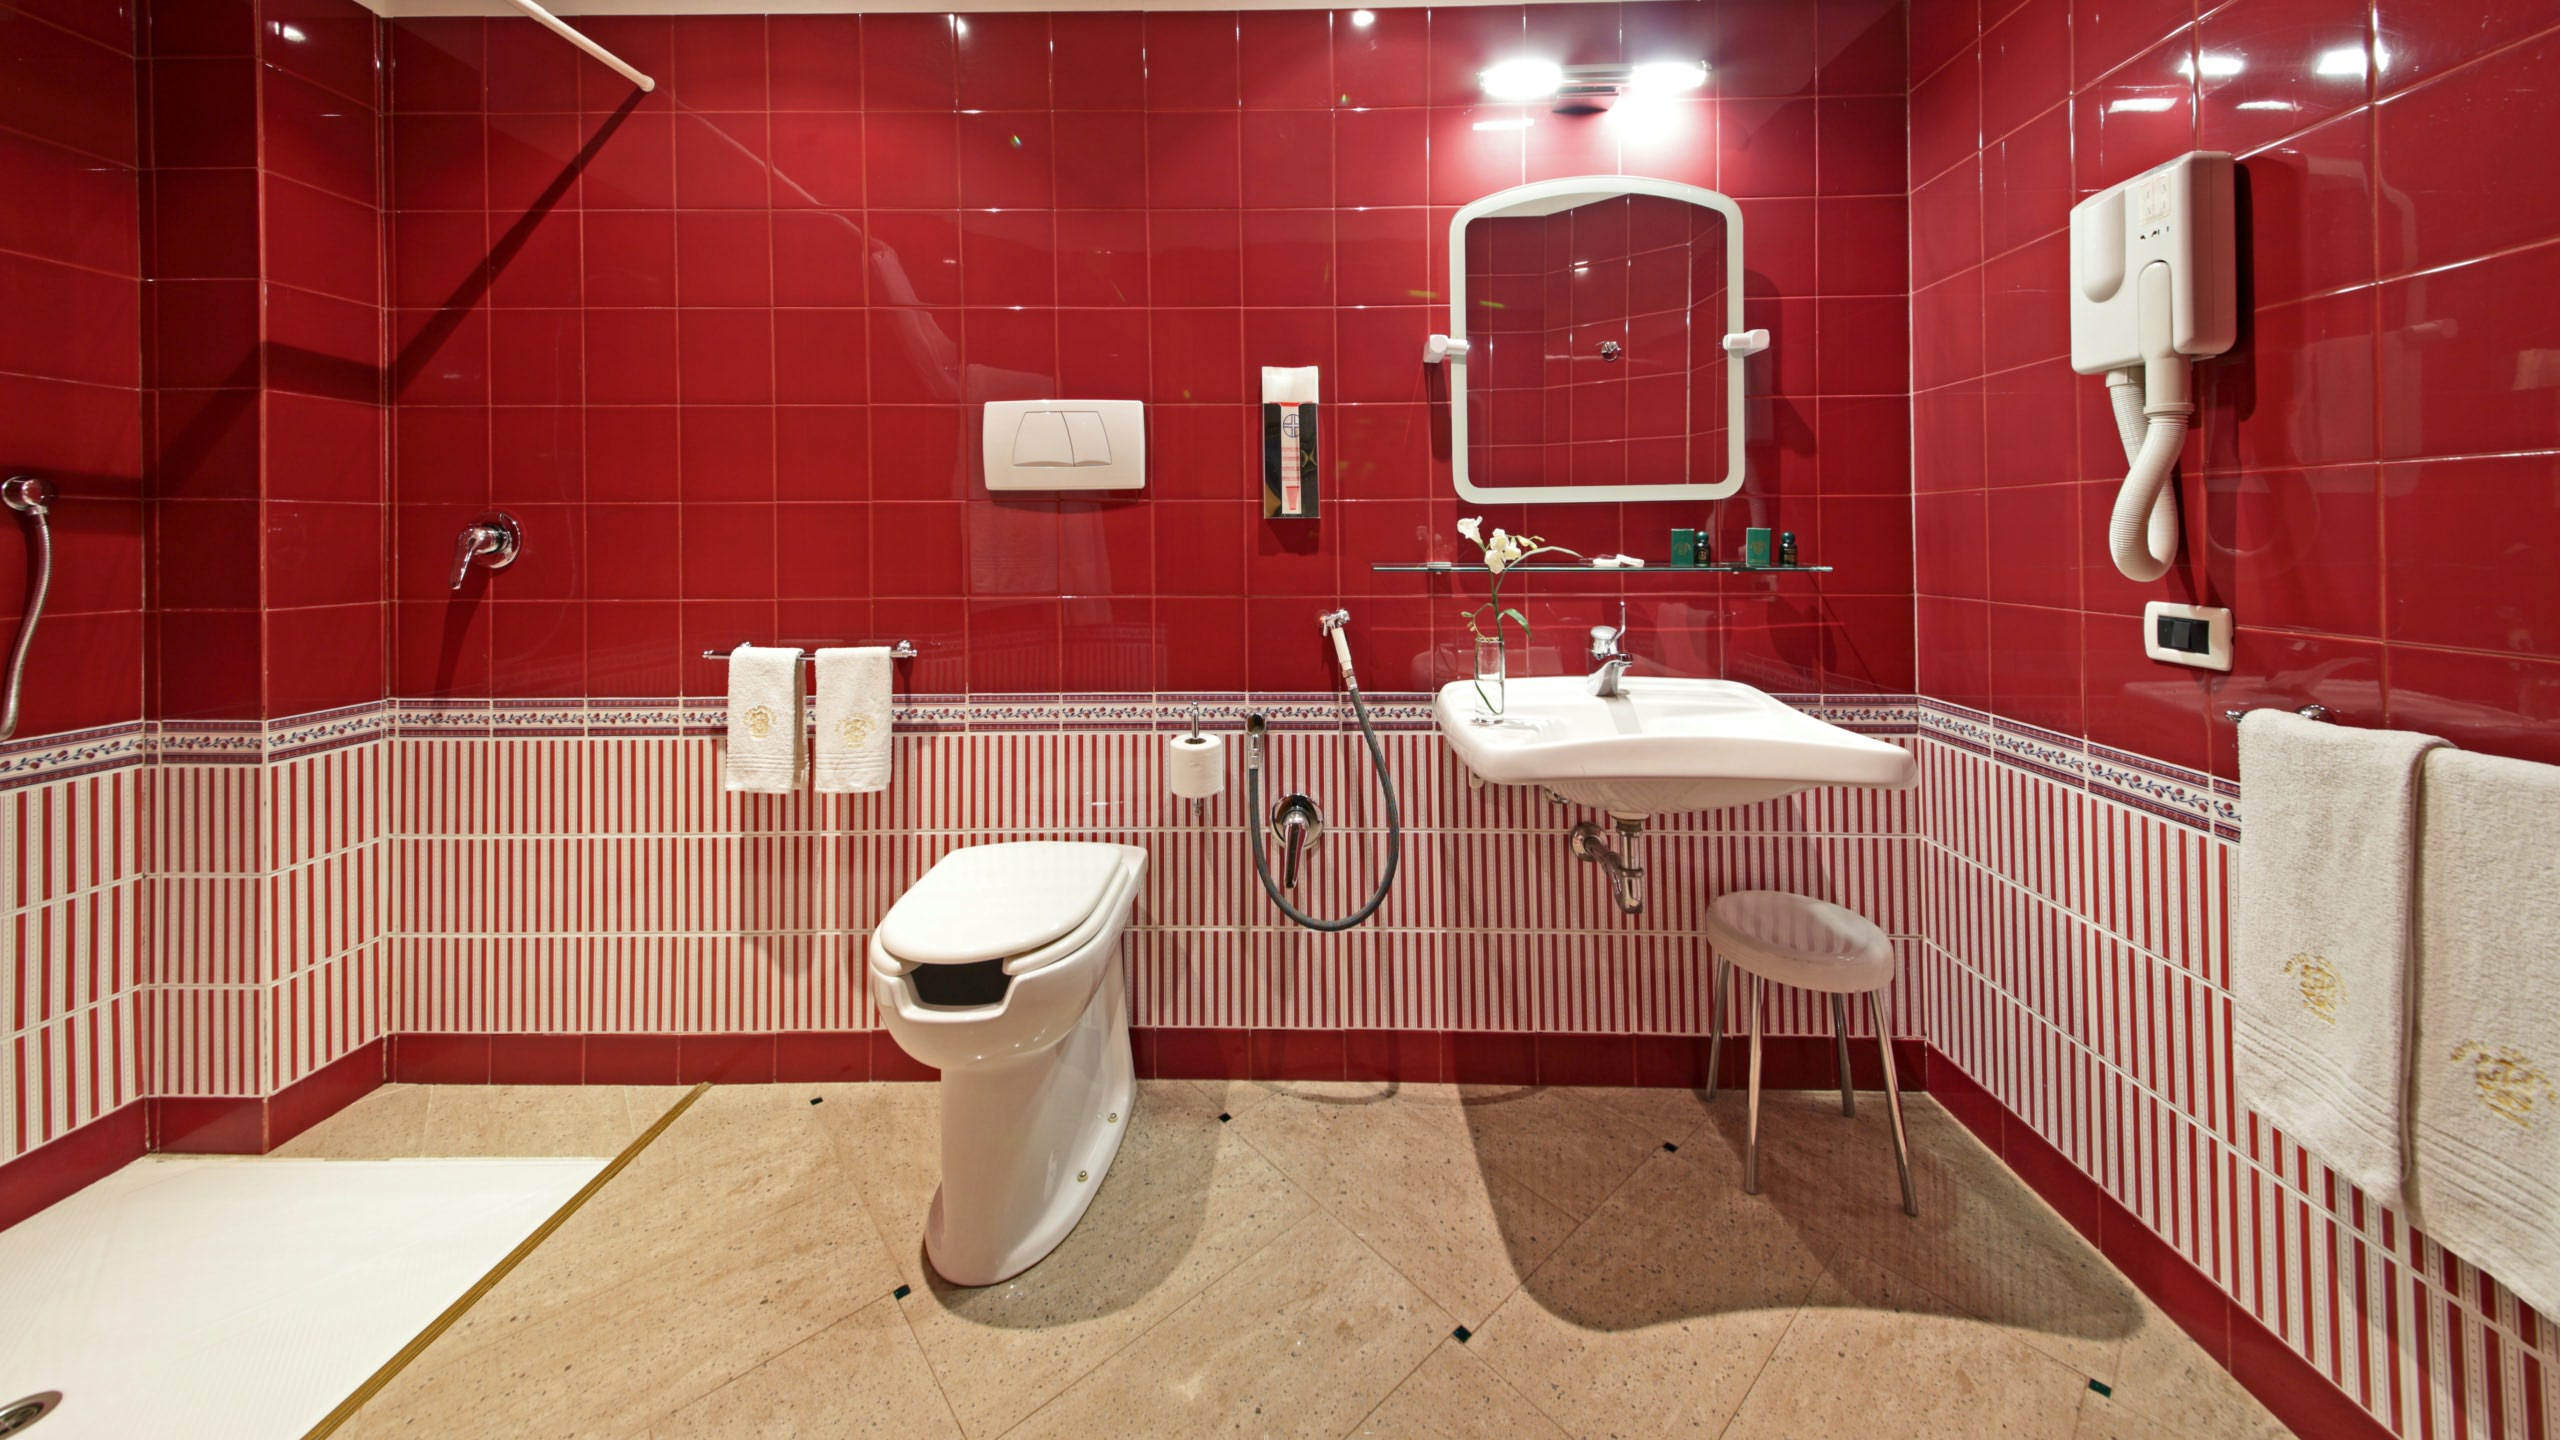 Hotel-Colonna-Frascati-bathroom-for-disabled-17